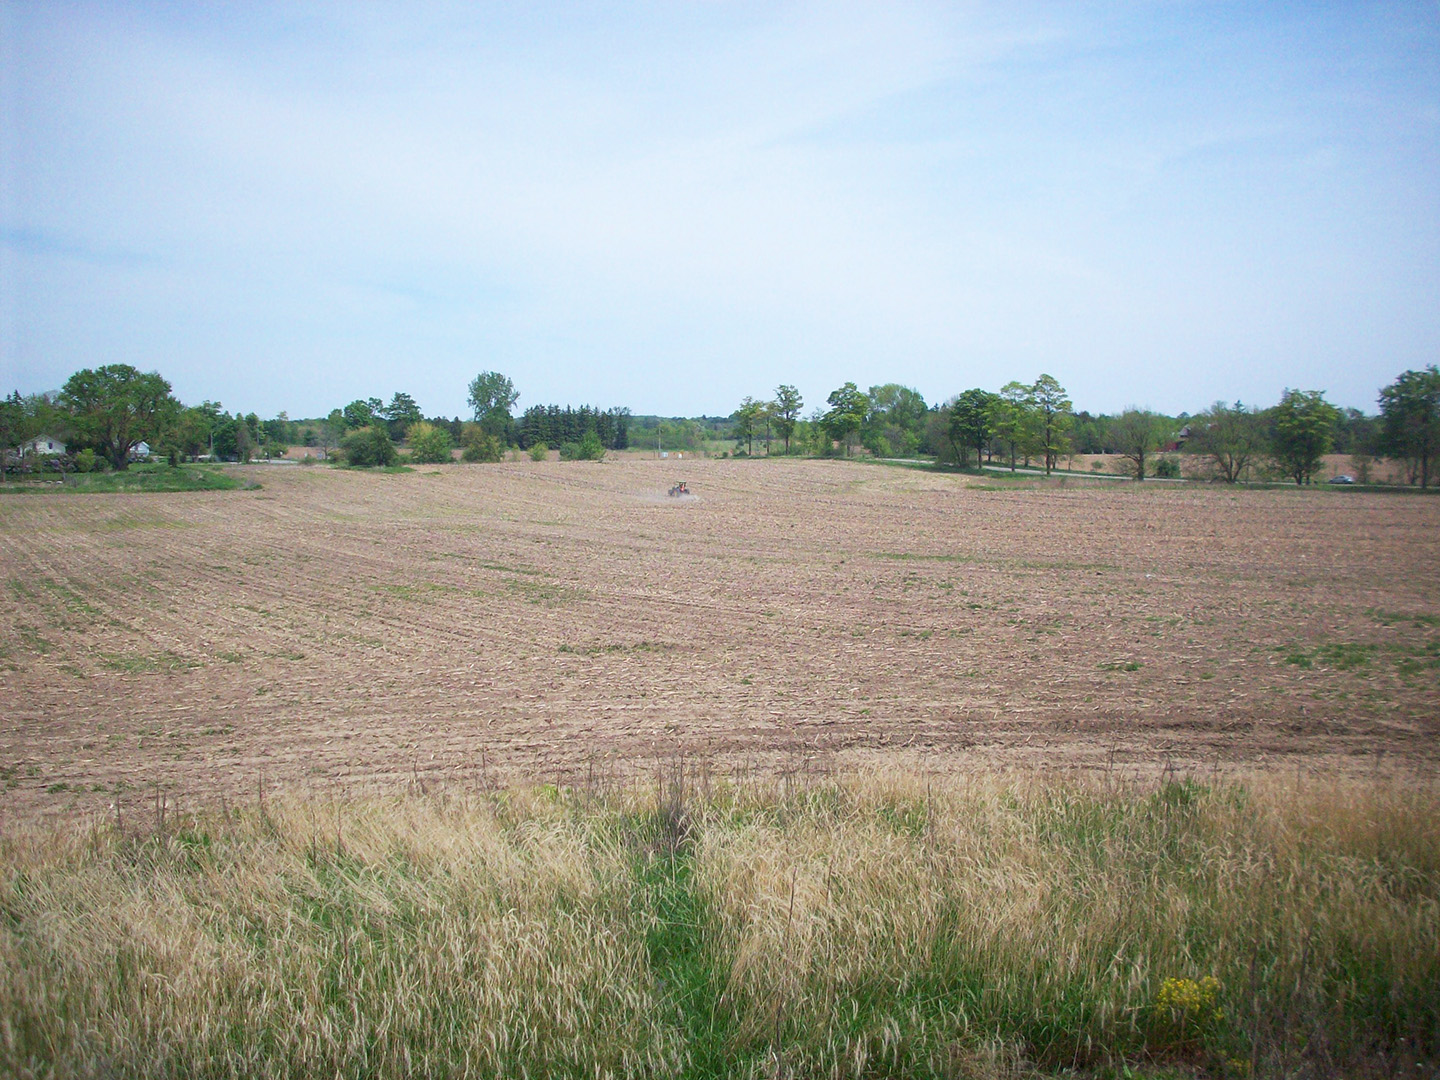 Rouge National Urban Park meadow restoration project seen in 2010 as seeding begins